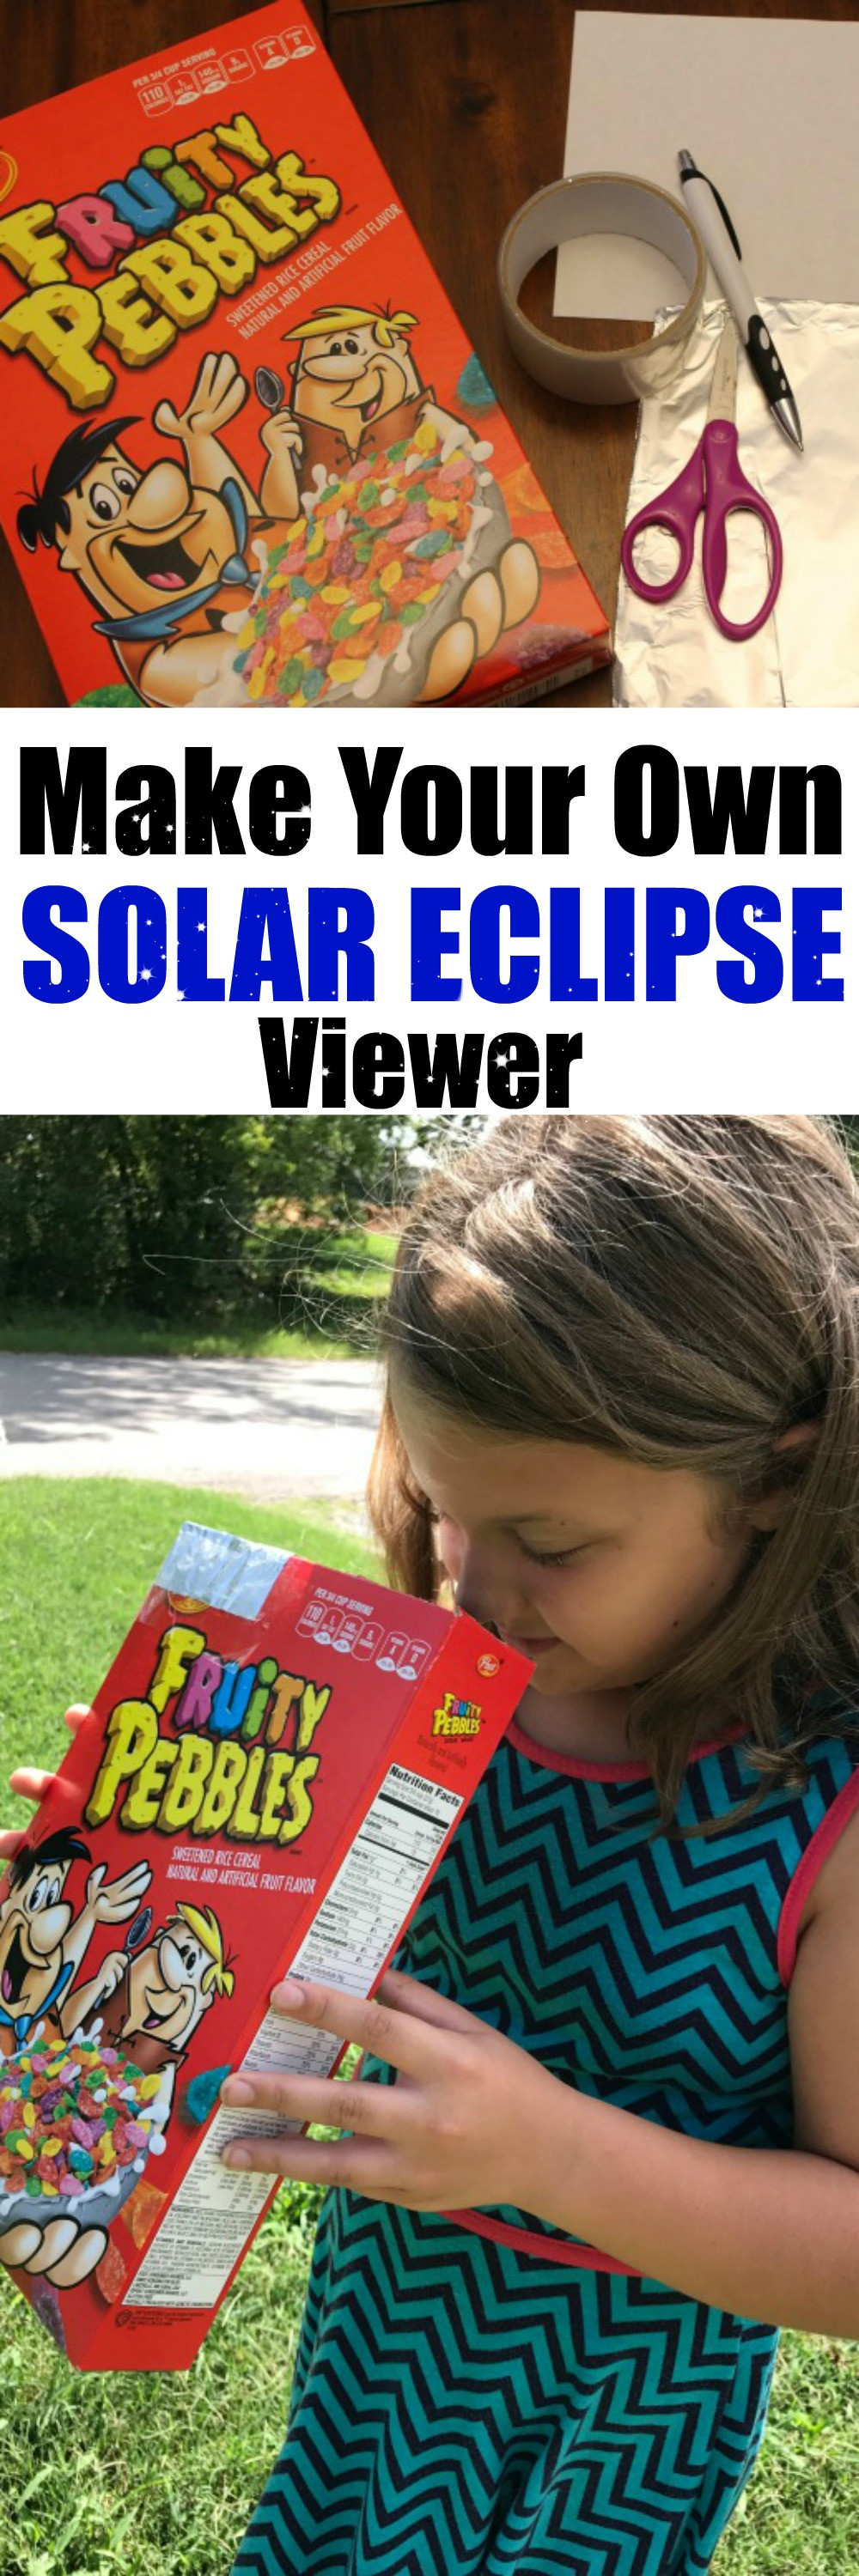 Best ideas about Solar Eclipse Viewer DIY . Save or Pin How to Make a DIY Solar Eclipse Viewer at Home Now.